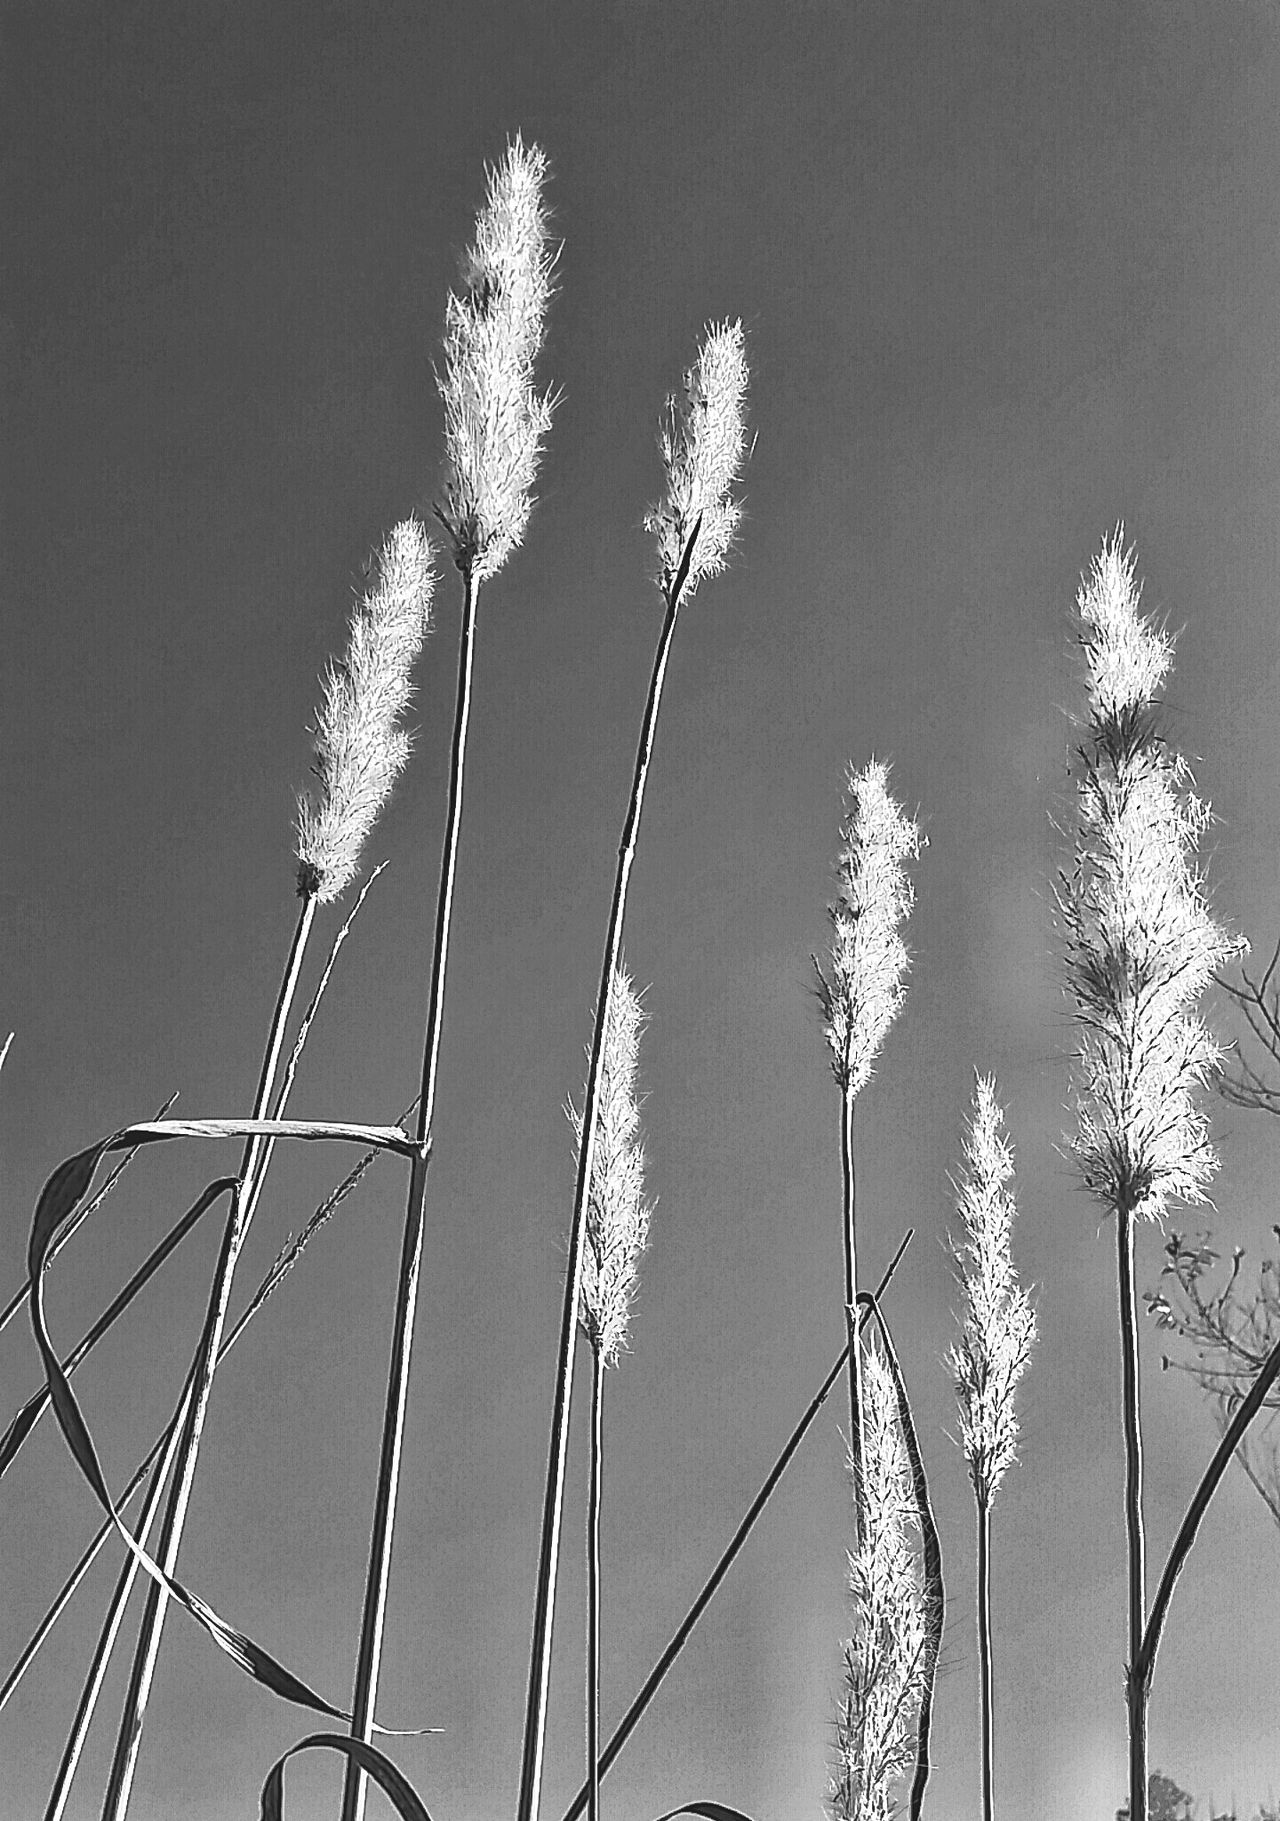 Nature Agriculture Clear Sky Low Angle View Field Old-fashioned Growth Wild Grasses Tall Grass Growth Over Growth Black And White Photography Black And White Dried Grass Autumn Tall Grasses Nature_collection Dried Plant Fluffy Beauty In Nature Flower Softness Outdoor Photography Dried Flowers